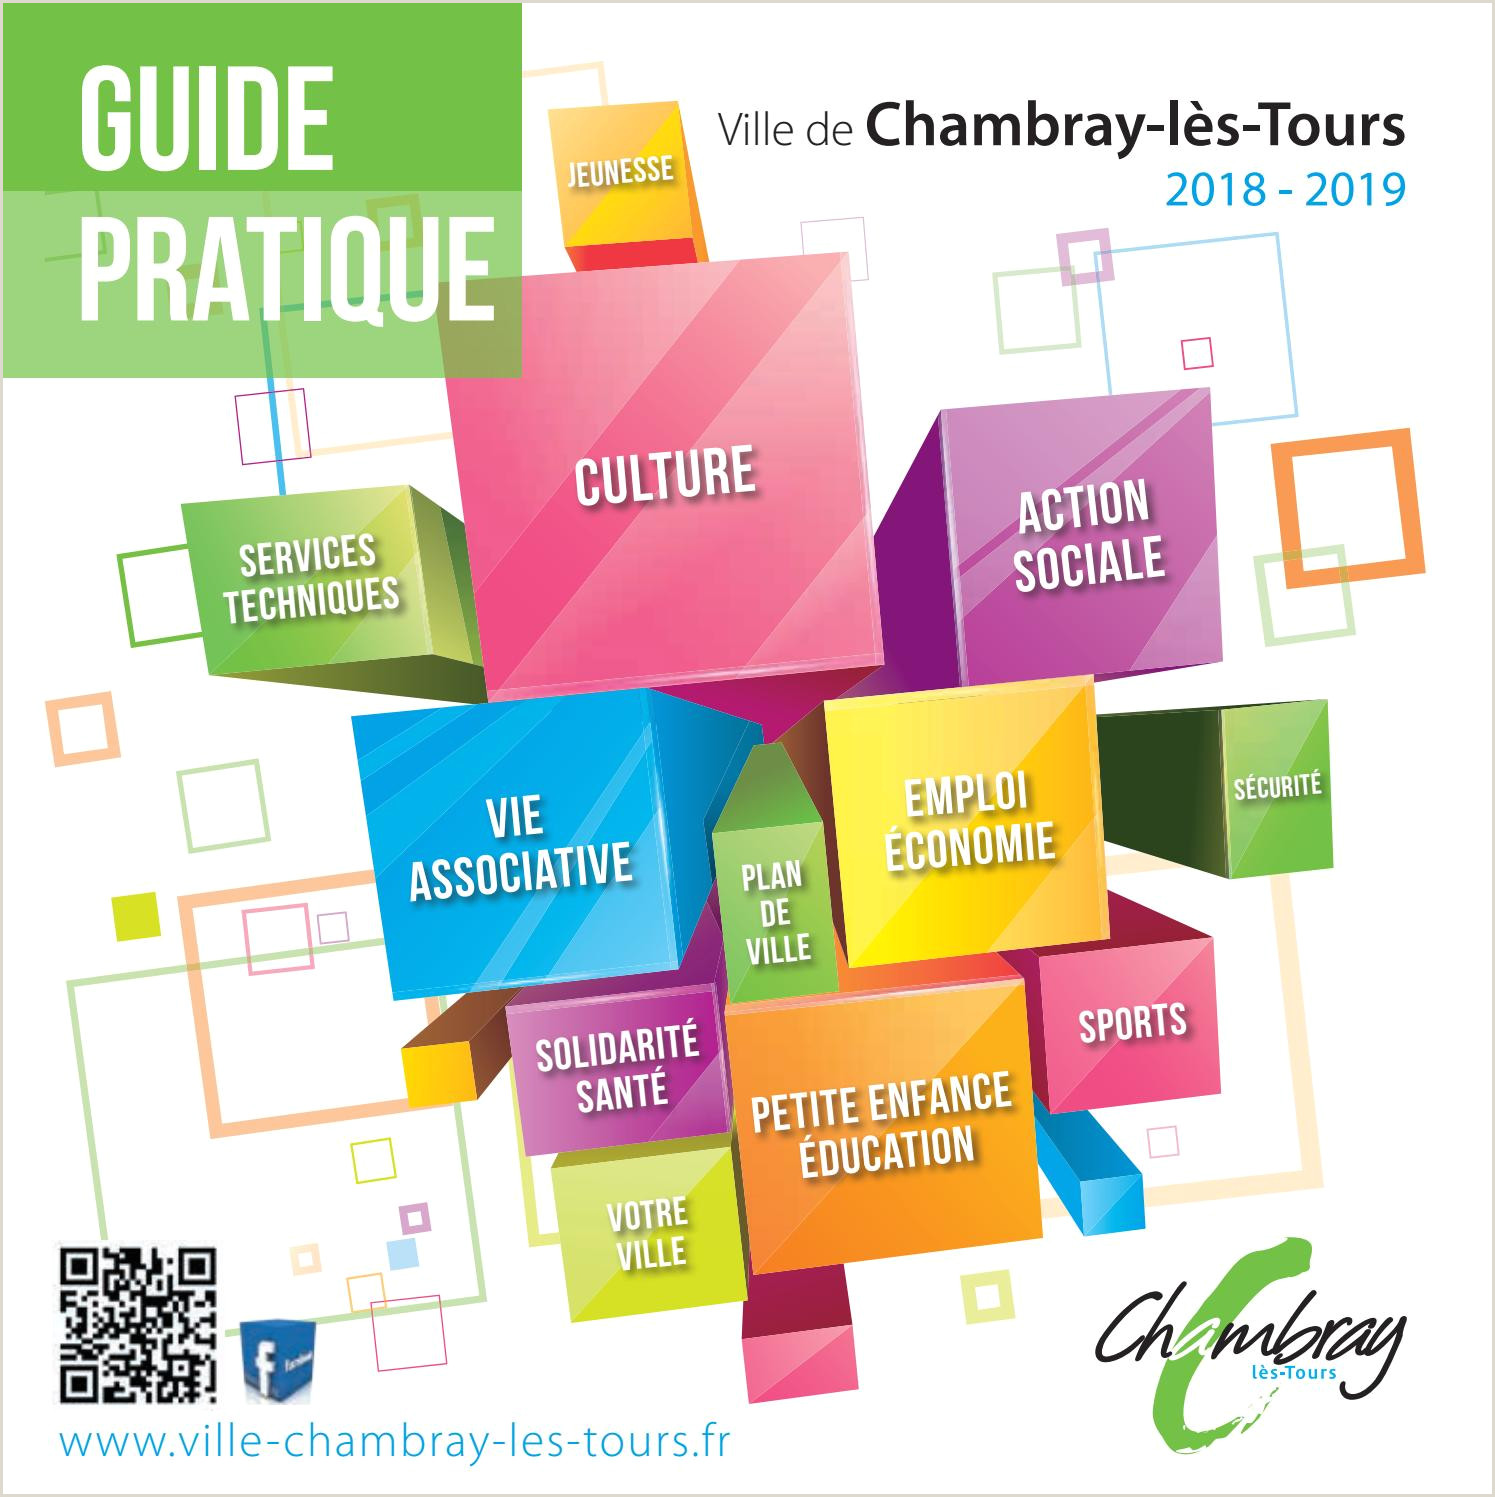 Exemple De Cv Centre Dintérêt Guide Pratique 2018 2019 by Ville Chambray L¨s tours issuu